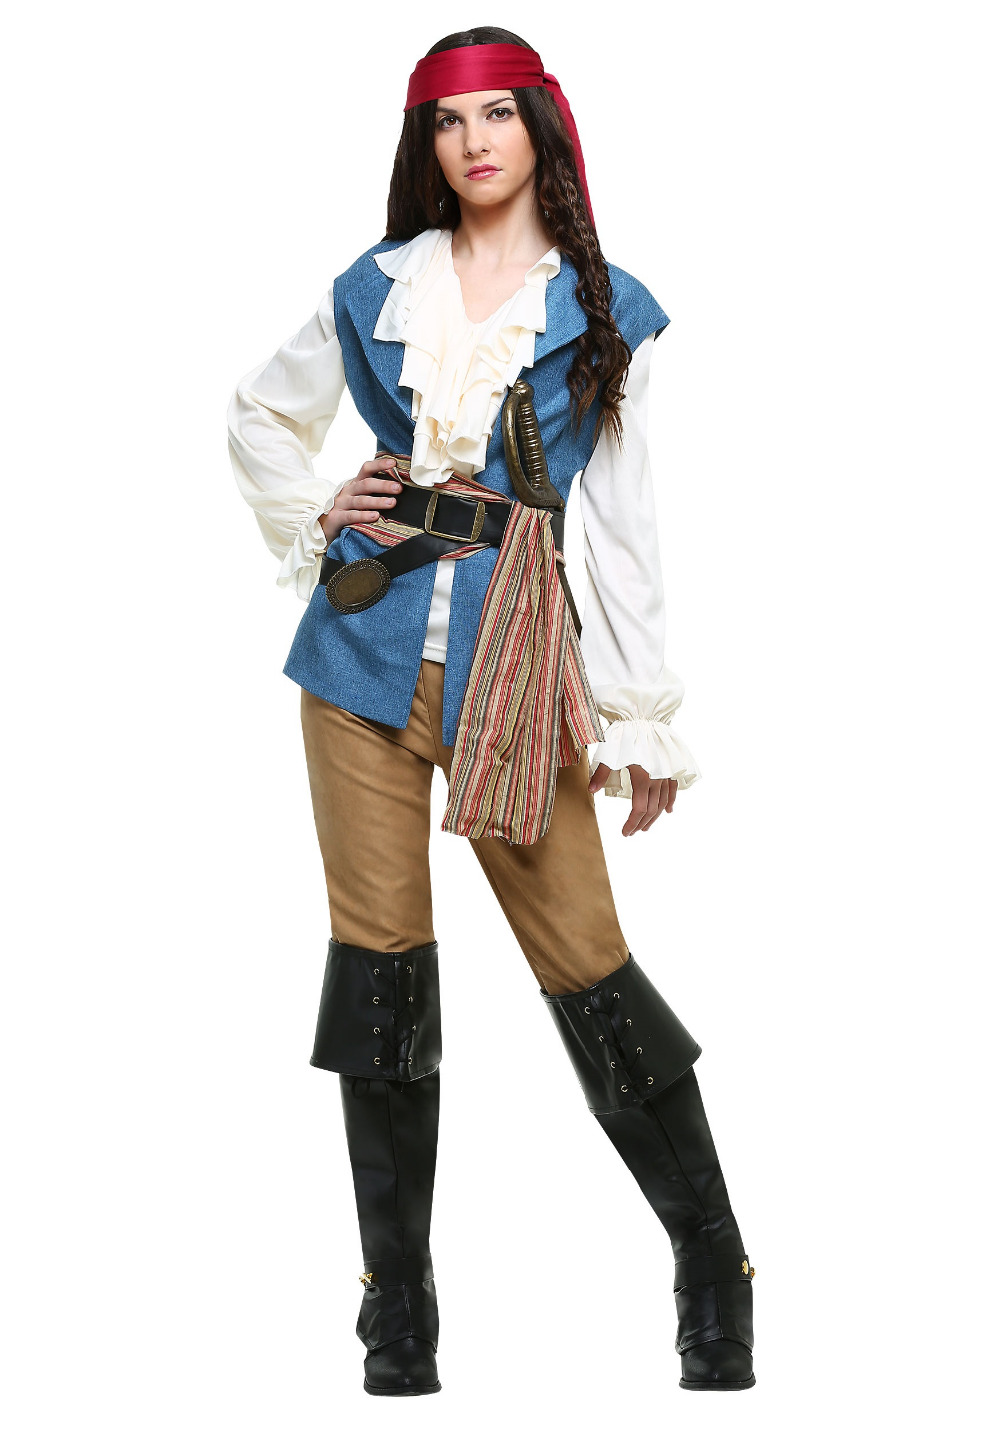 Women Pirate Costume Halloween Carnival Party Buccaneer Uniforms Captain Pirates of The Caribbean Cosplay Costumes